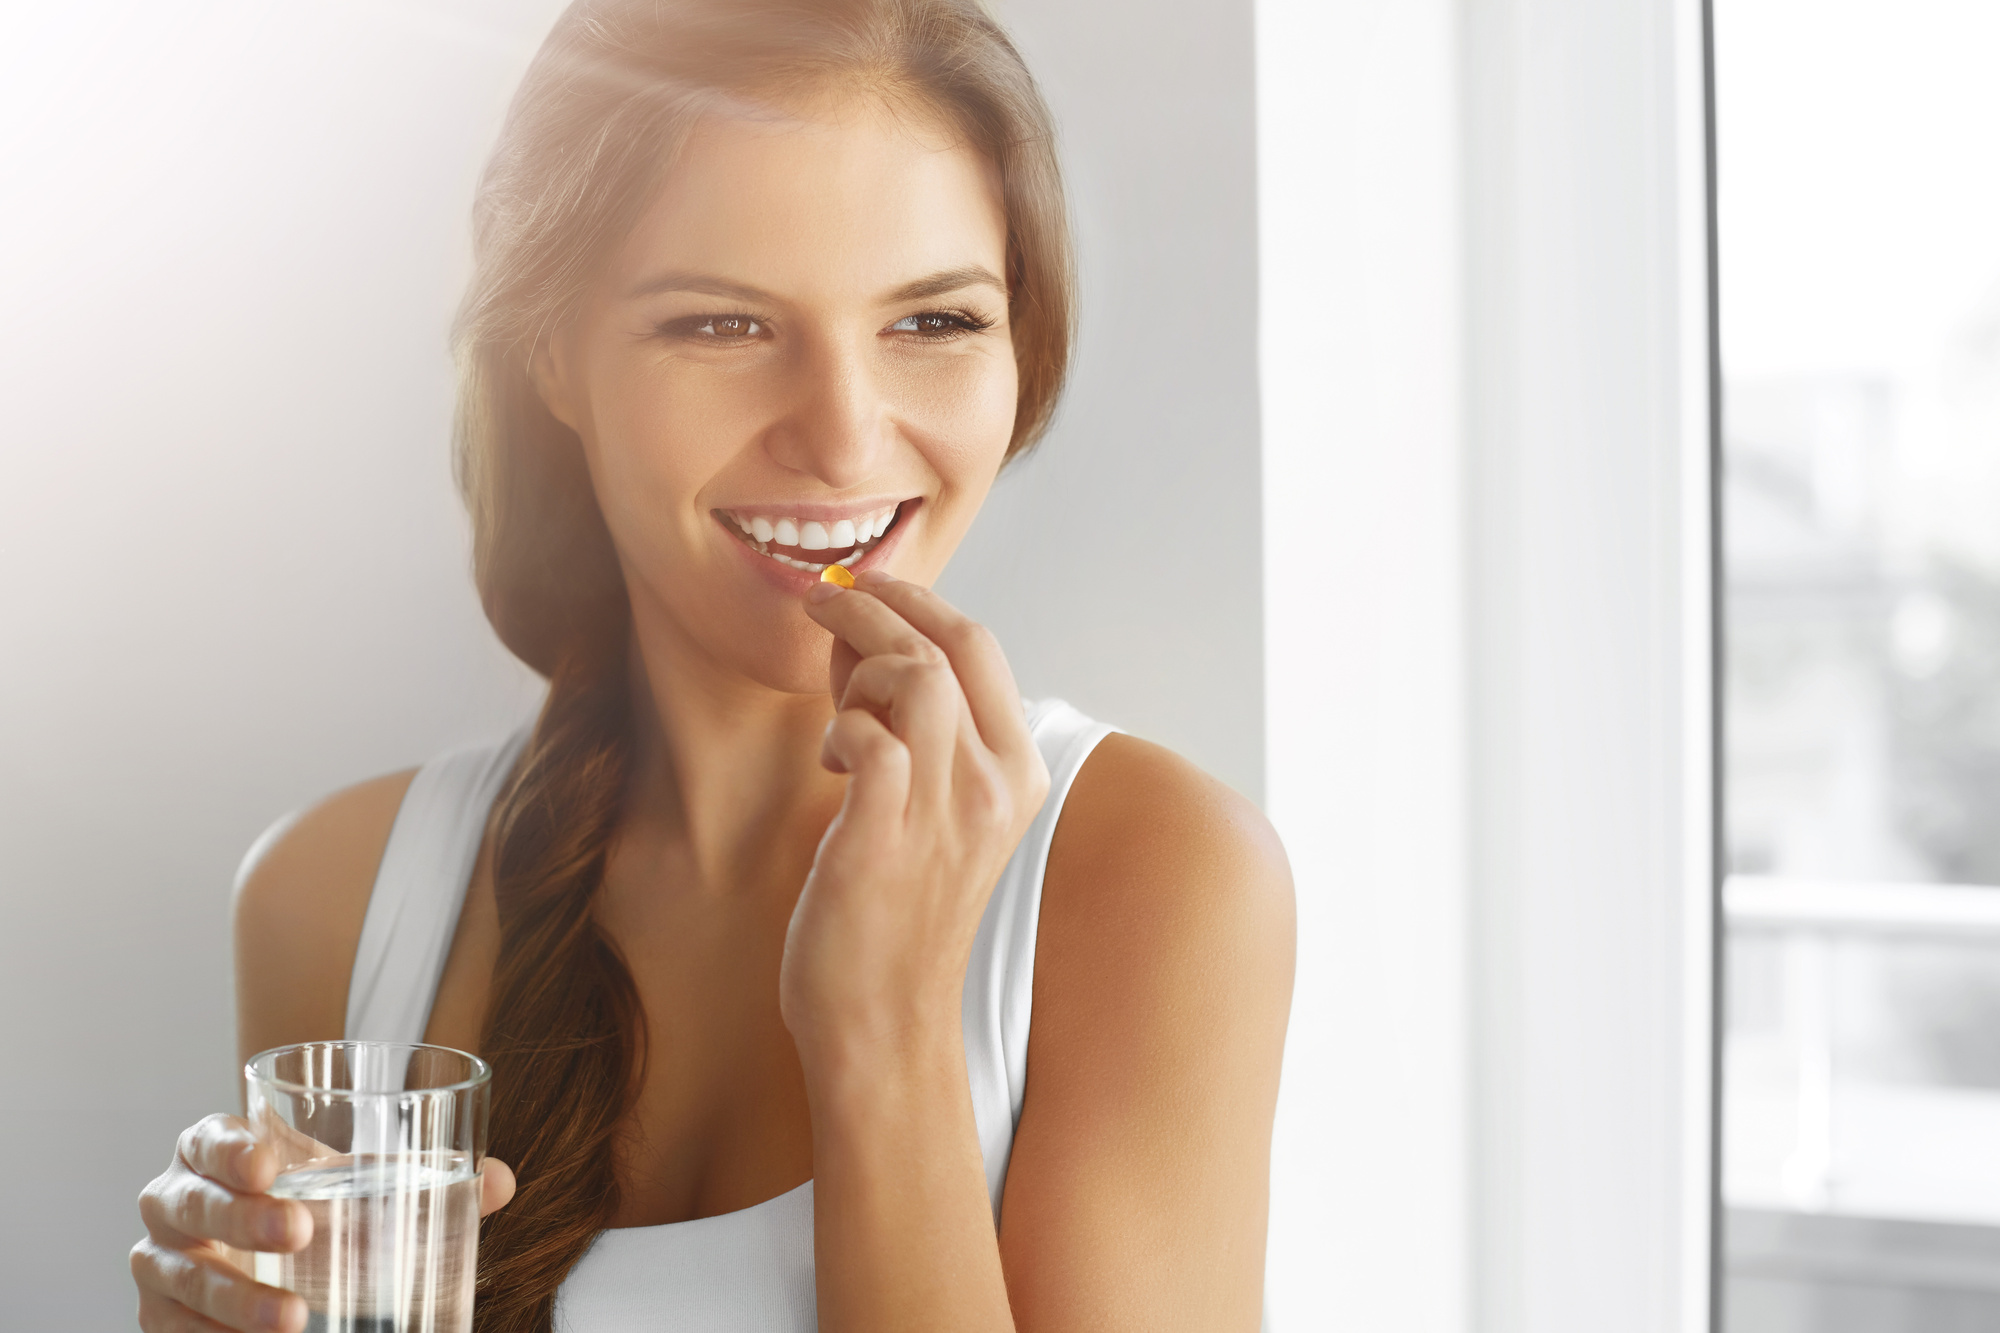 Healthy Diet. Nutrition. Vitamins. Healthy Eating, Lifestyle. Woman With  Fish Oil Capsules. - Addicted To All Things Pretty